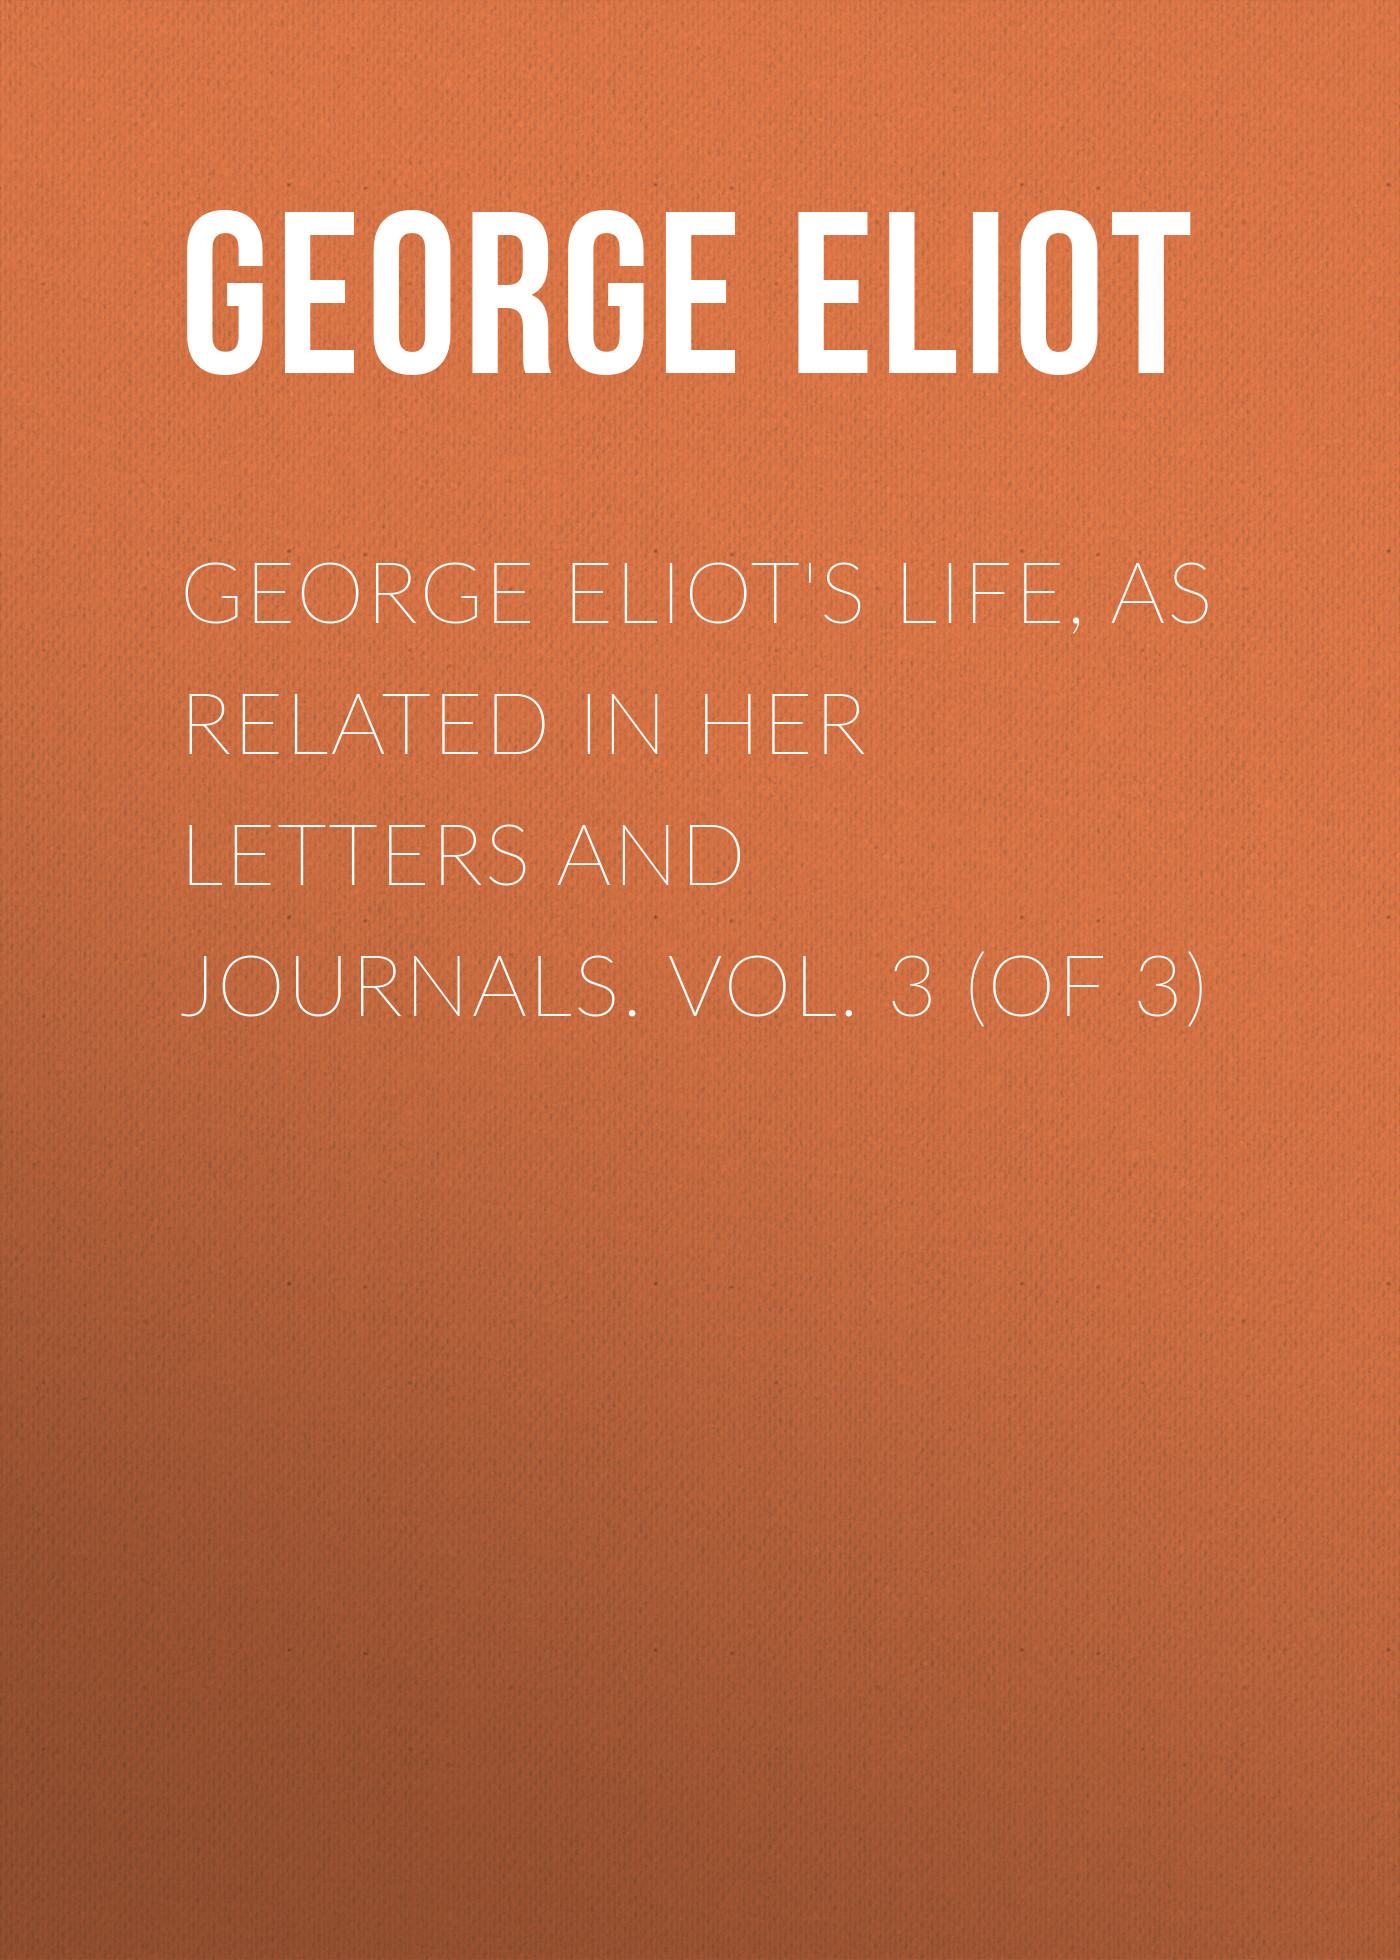 Джордж Элиот George Eliot's Life, as Related in Her Letters and Journals. Vol. 3 (of 3) джордж элиот brother jacob